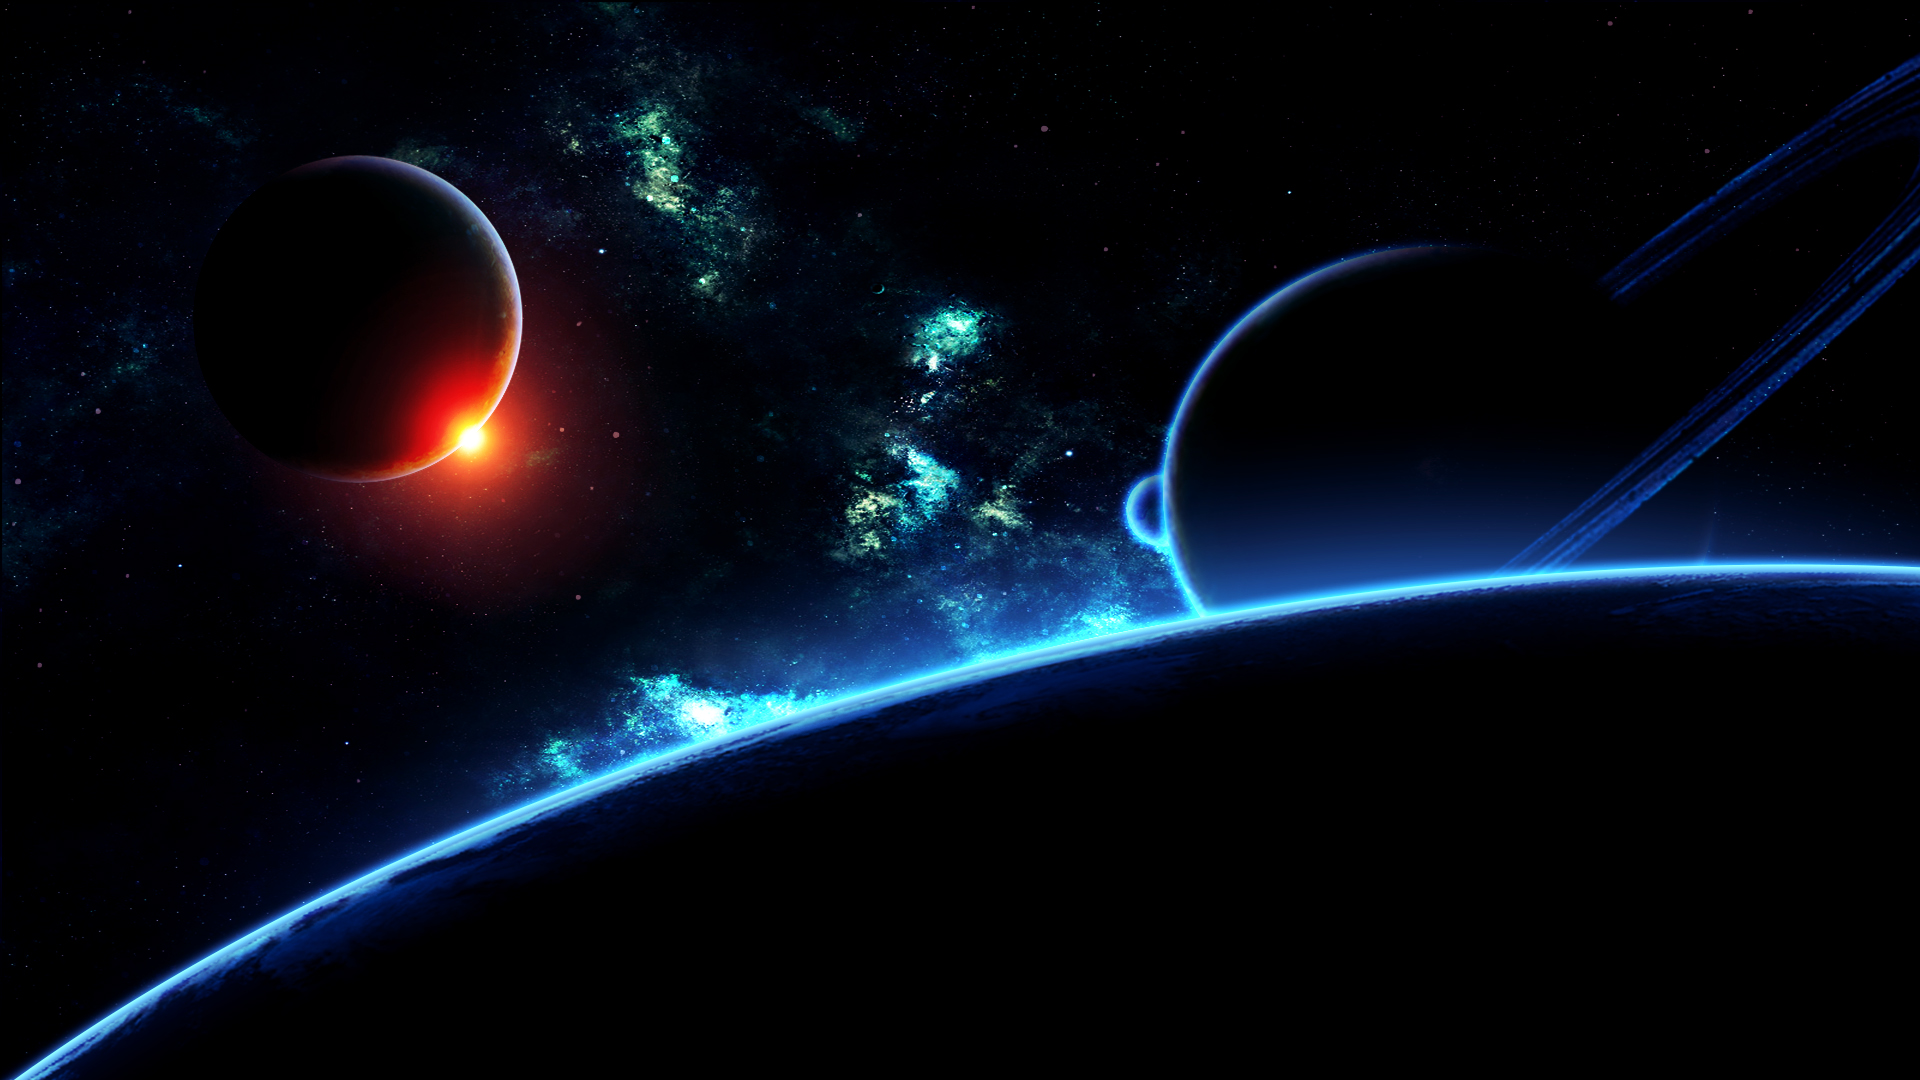 deep space hd wallpaper 1366x768 -#main